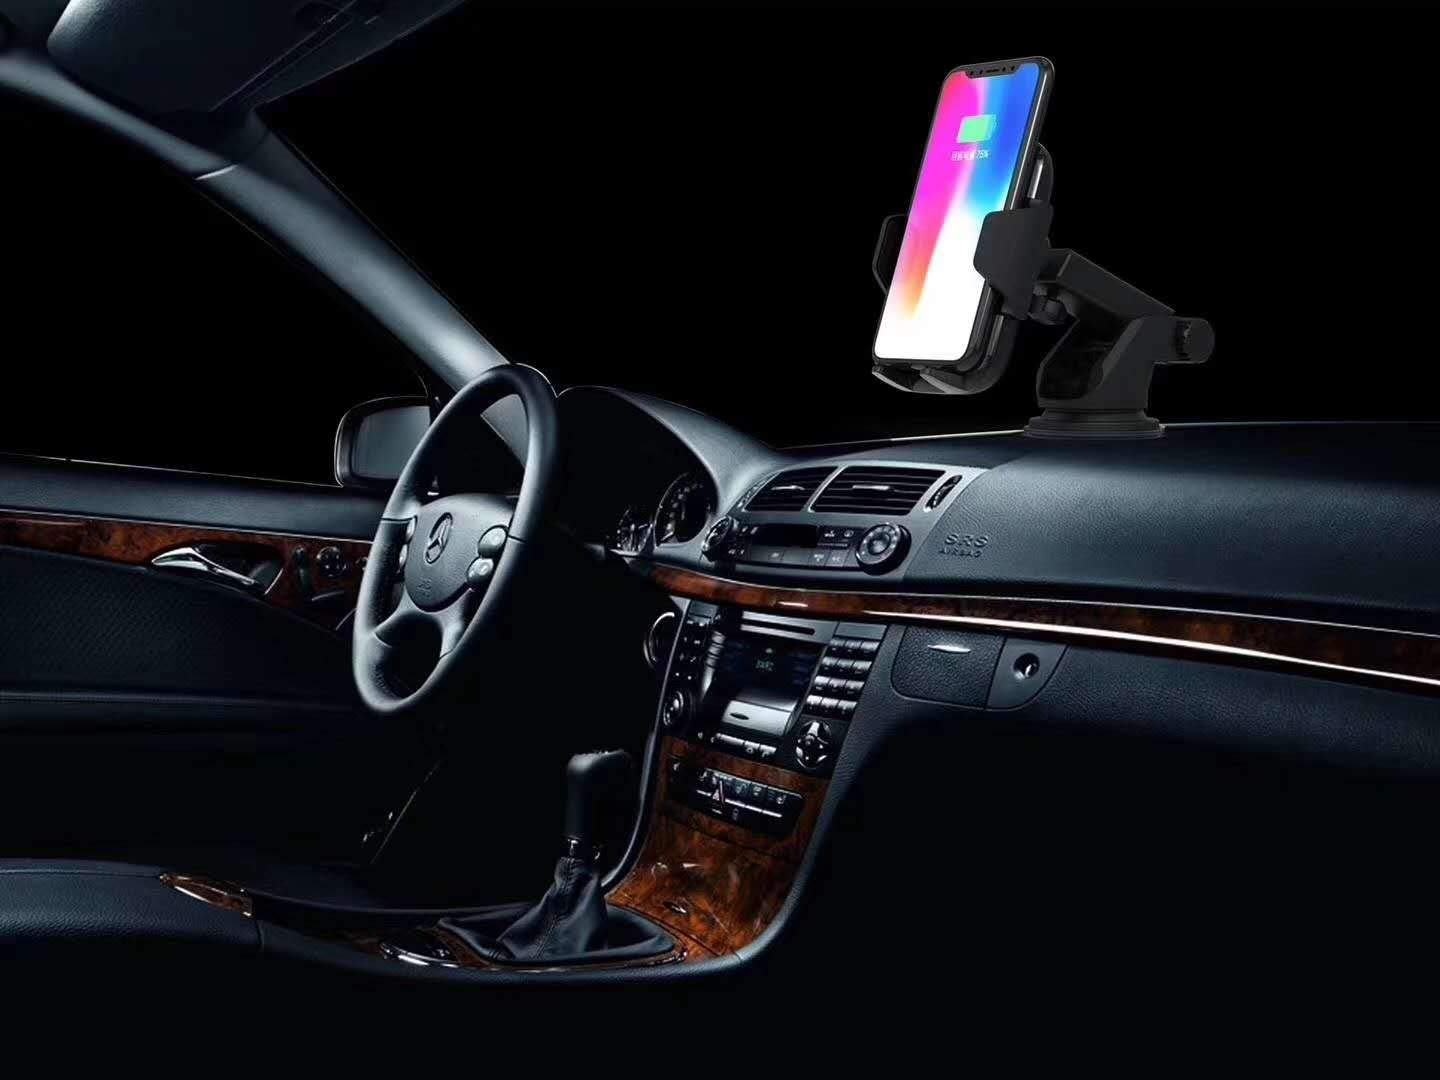 Wireless Charger Car Phone Mount Dashboard Windshield Phone Holder for iPhone Xs Max//XS//XR//X//8Plus//8 and for Samsung S9//S9+//S8//S8+//Note9//Note8 /& Other Smartphone Fitfirst